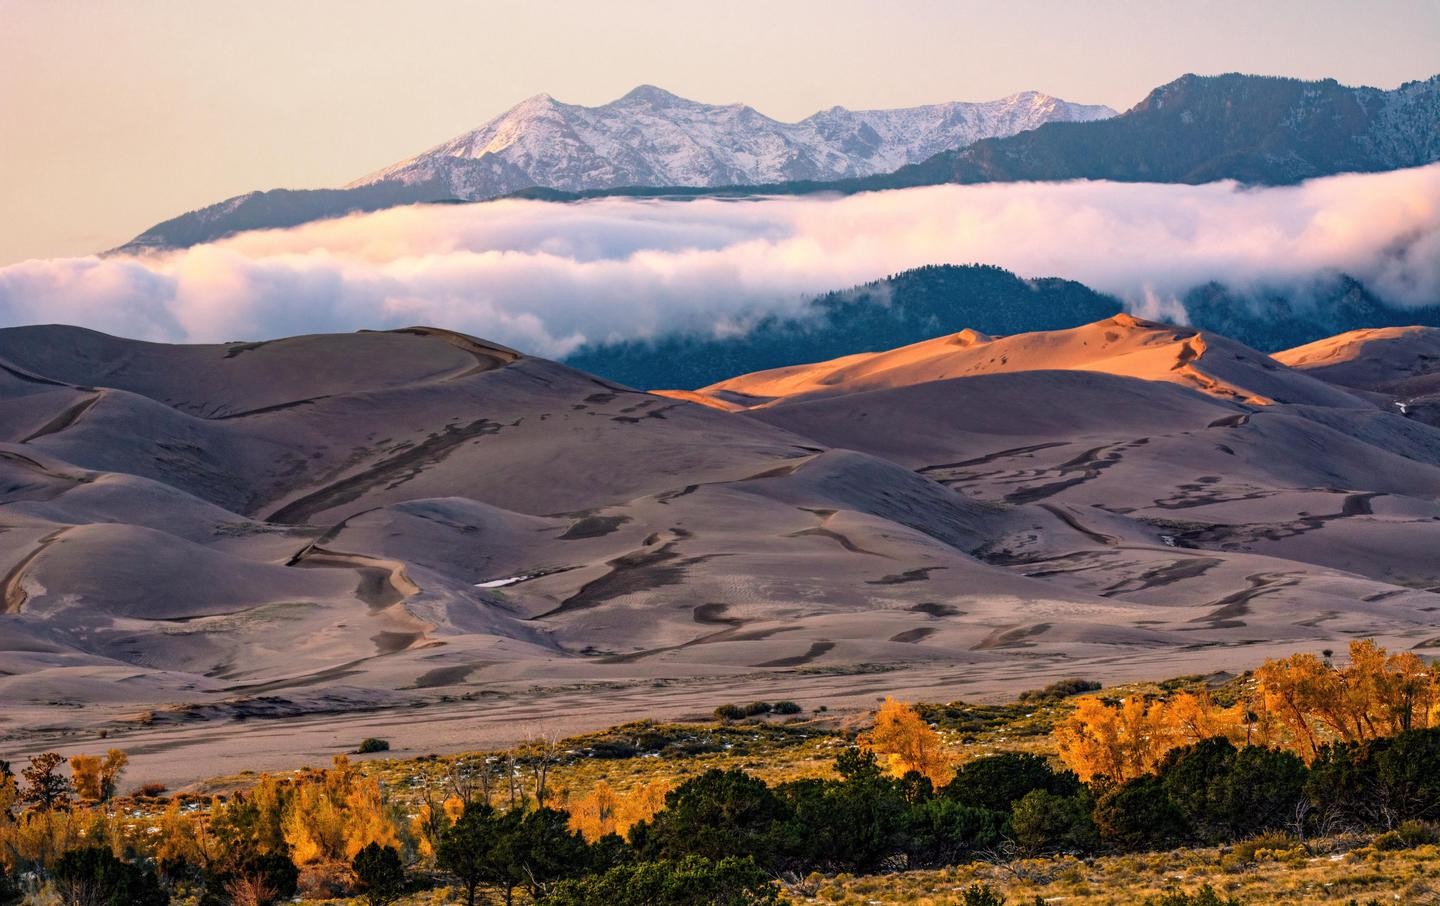 Gold Cottonwoods, Dunes, and Cleveland PeakExperiencing Great Sand Dunes in the quieter seasons of fall and winter can be a rewarding experience.